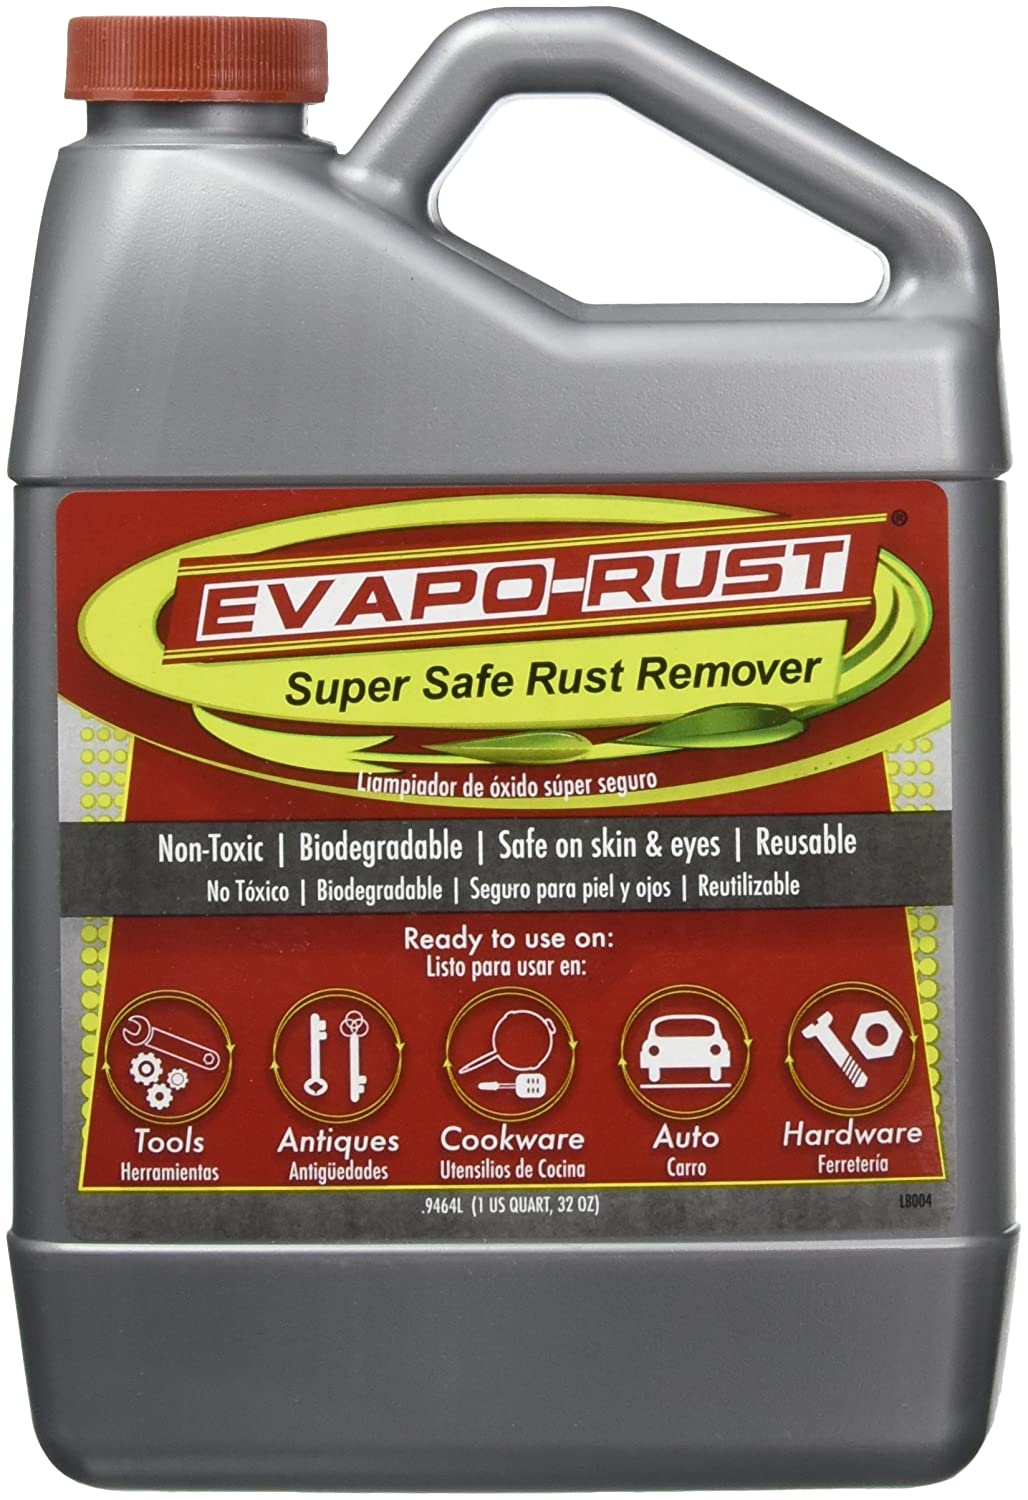 "Amazon.com: Evapo-Rust EVAER004 Rust Remover (EVAPO-RUSTâ""¢, Case of 4-1 Quart Bottles): Automotive"